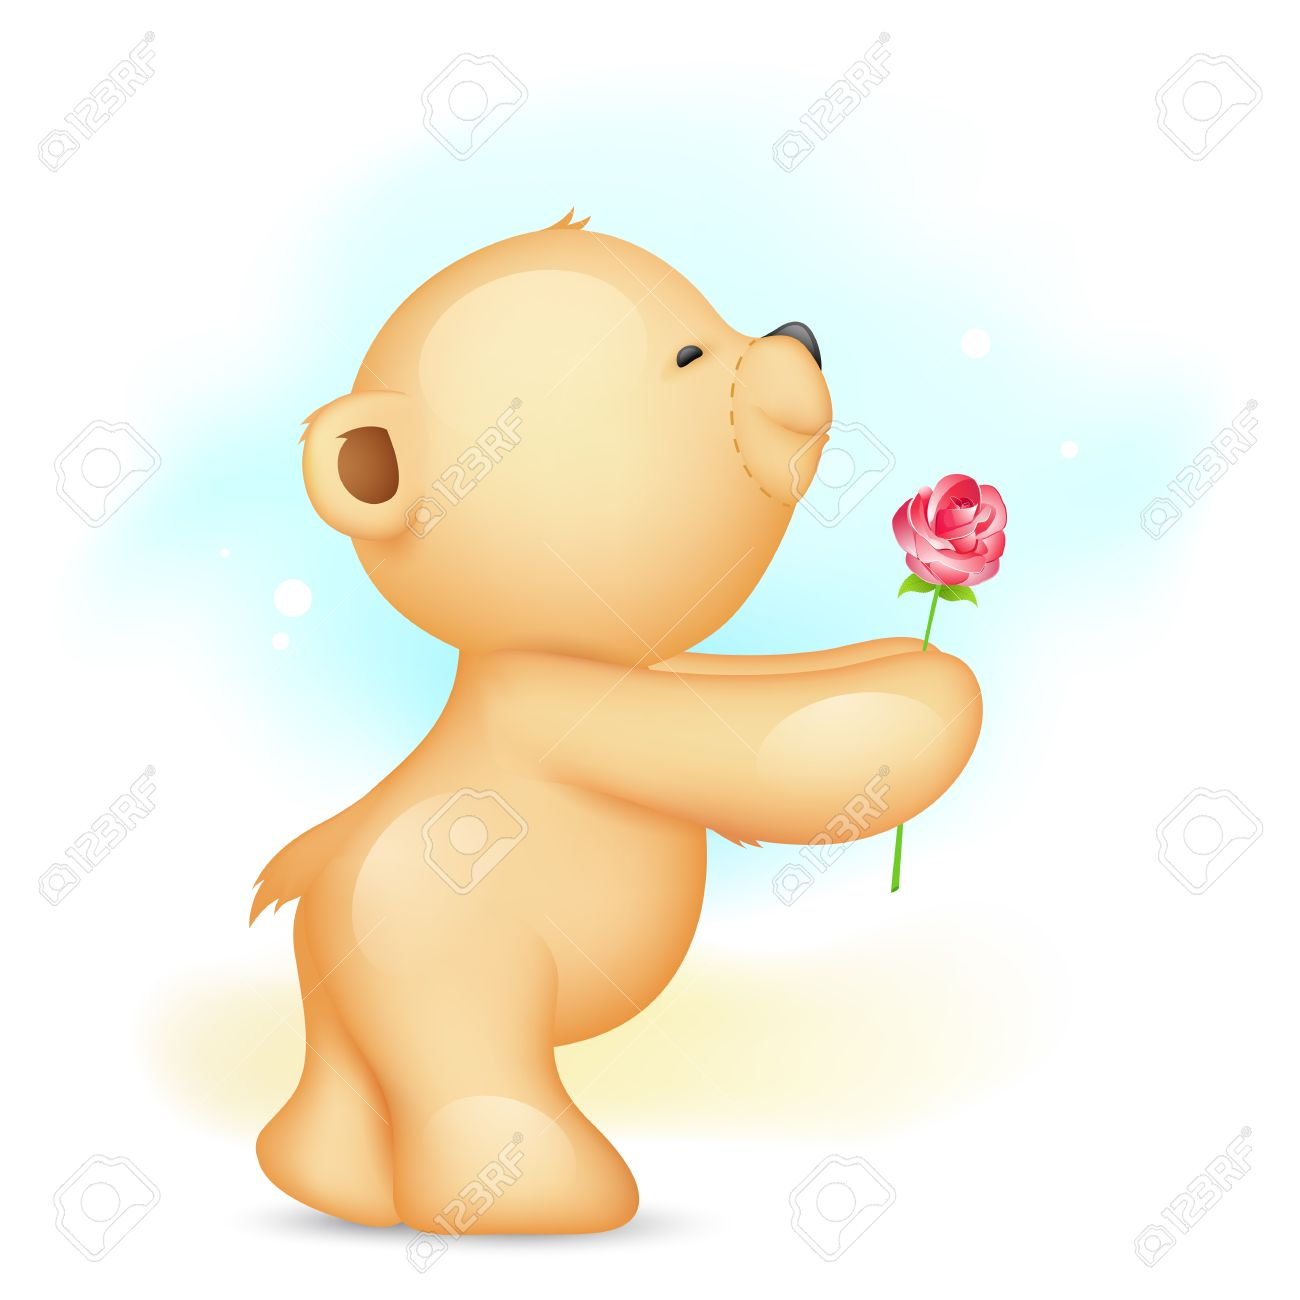 illustration of teddy bear holding rose in proposing pose Stock Vector - 17376414